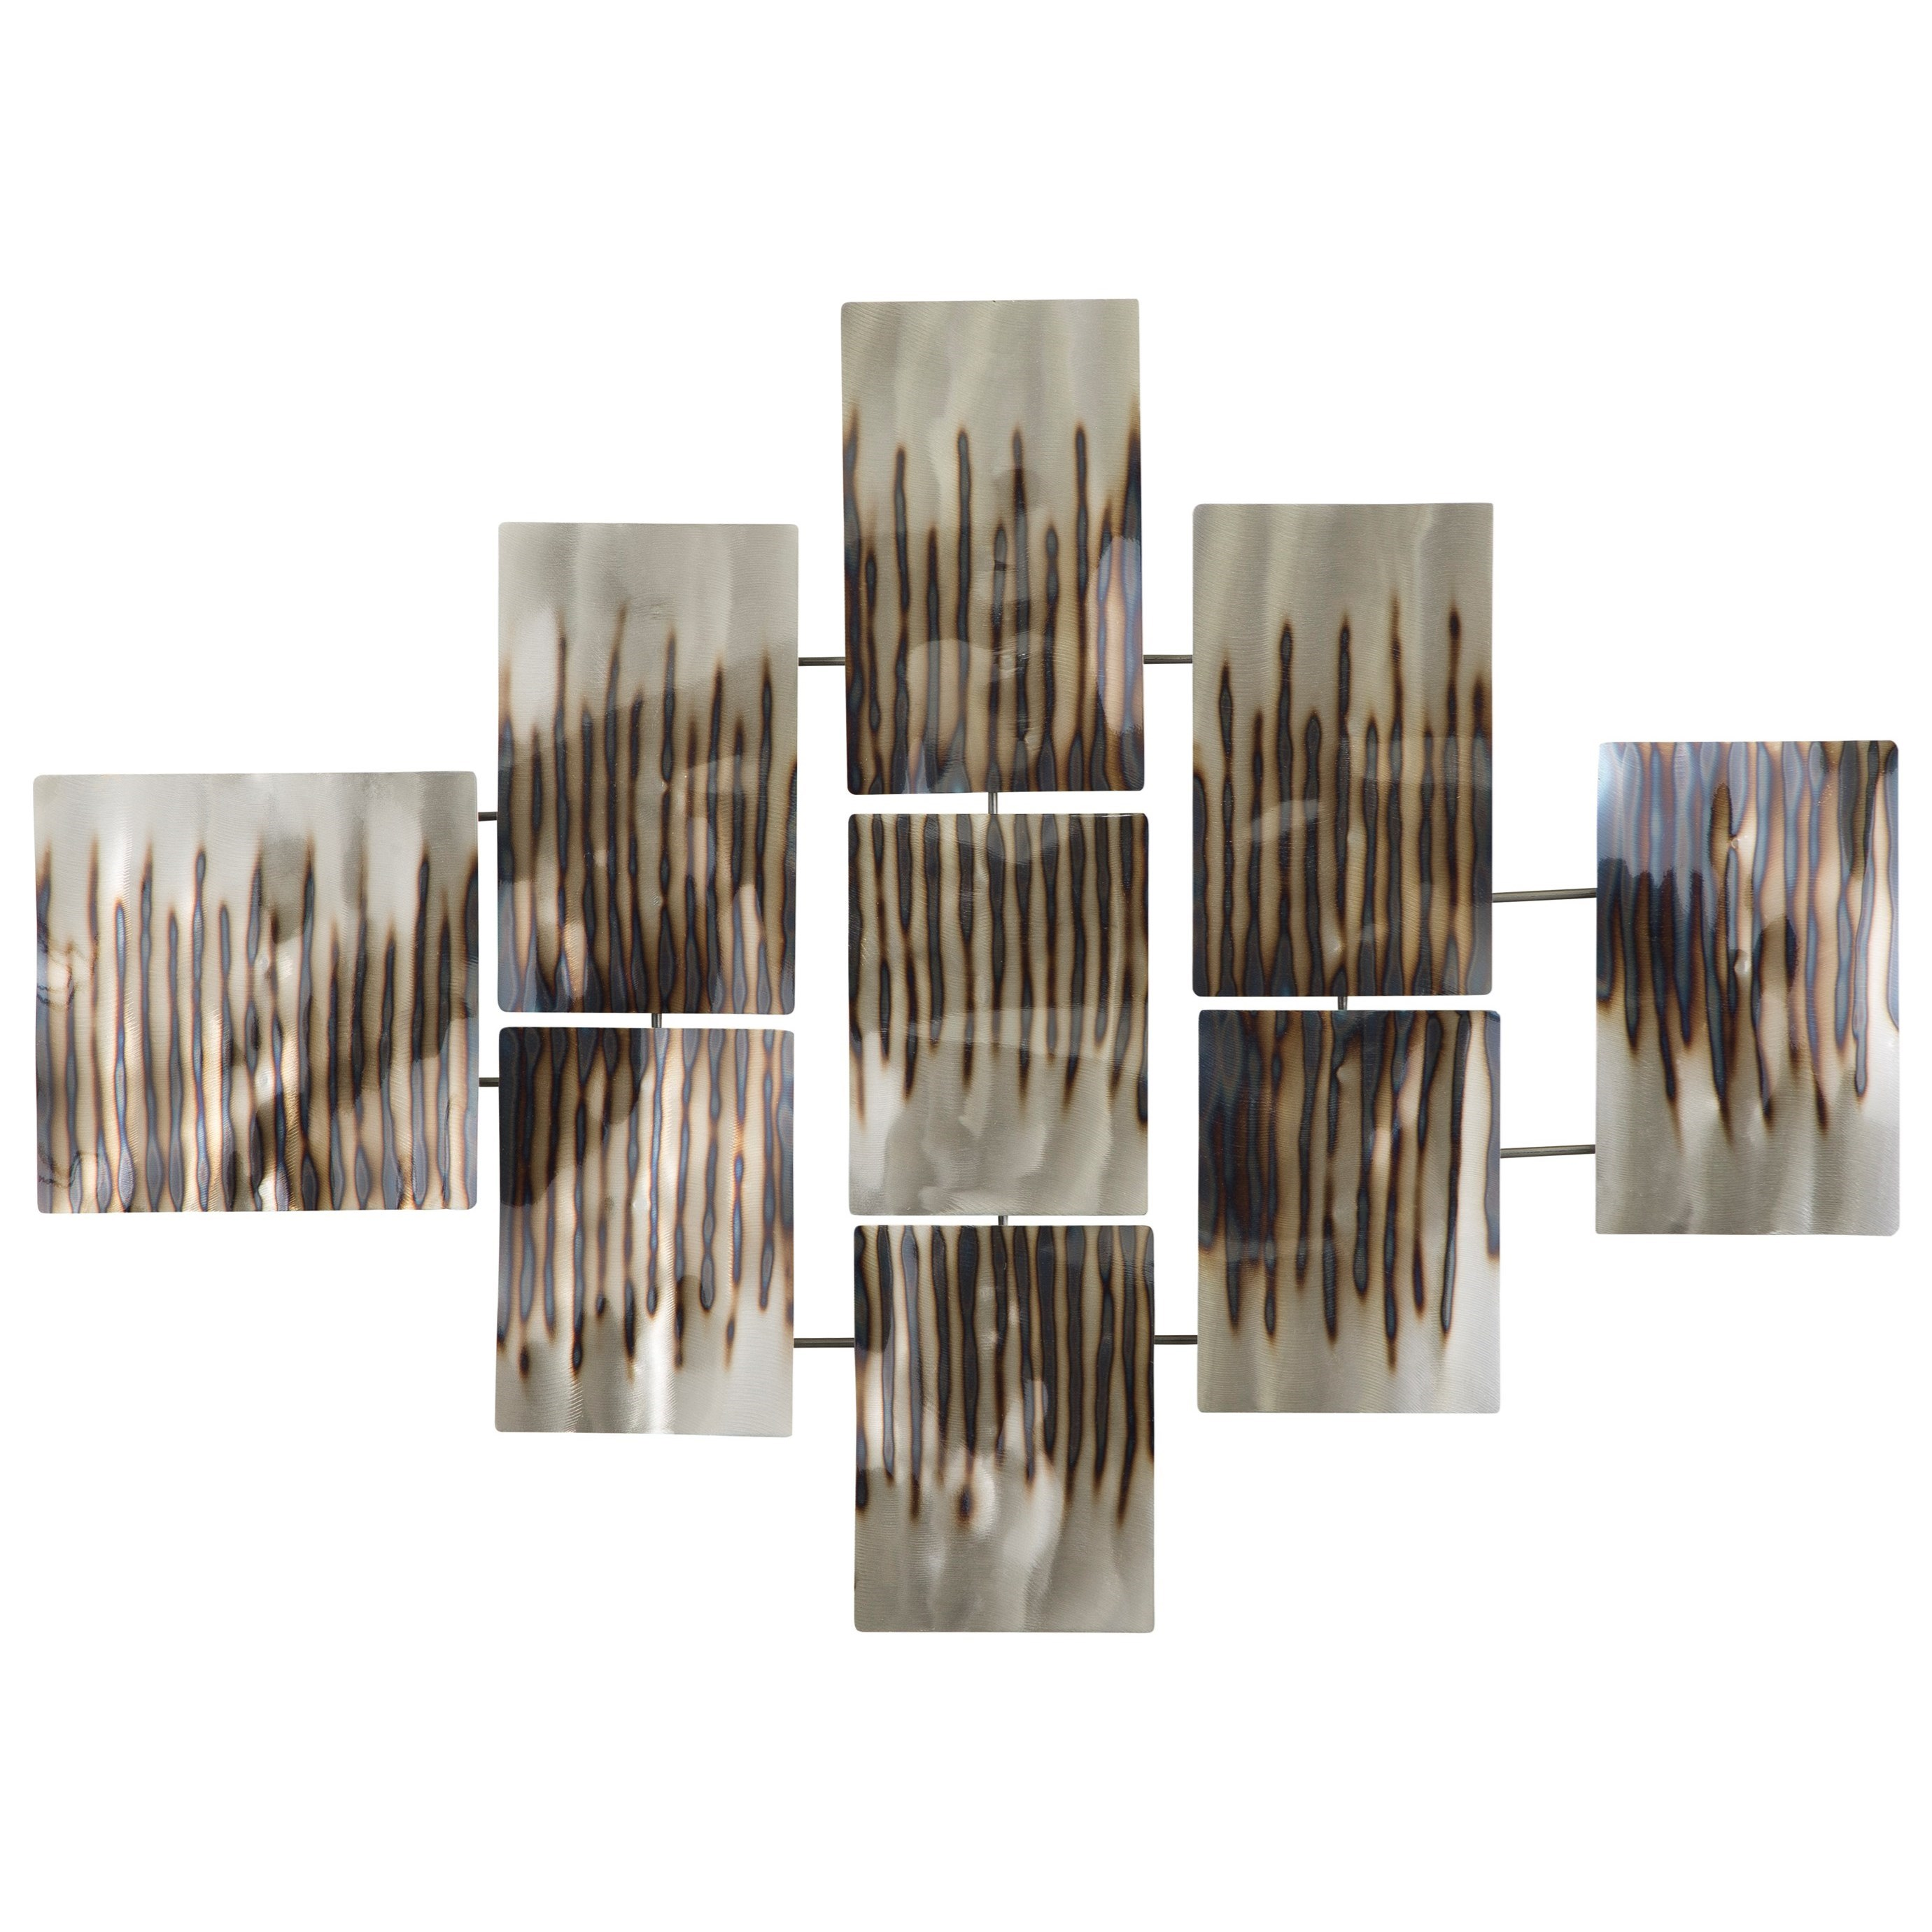 Signature Design by Ashley Wall Art Oeneus Silver/Brown/Gold Finish Wall Decor - Item Number: A8010004